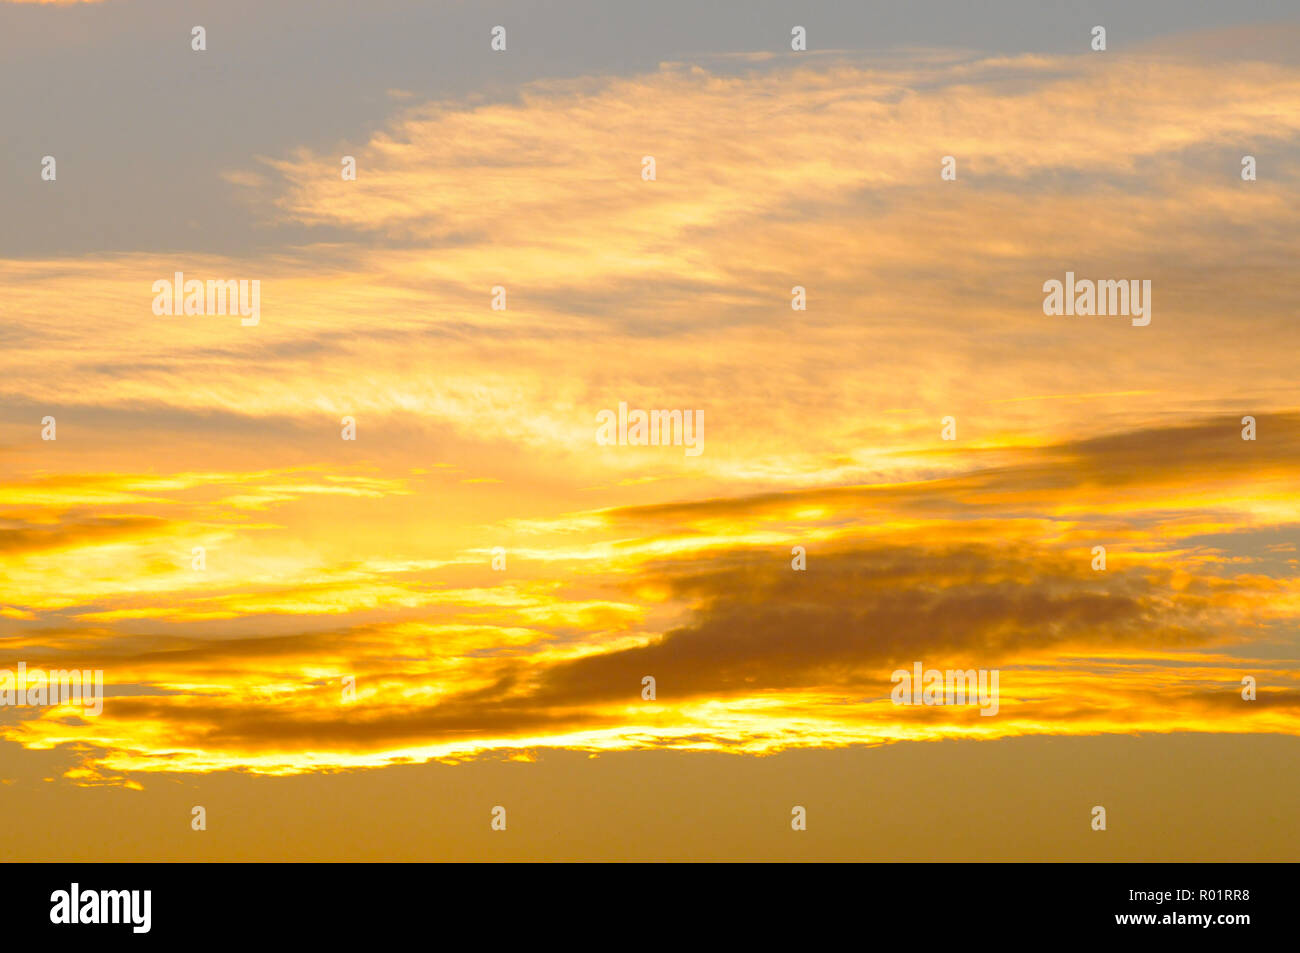 London, UK, 31 October 2018 Sunset in Richmond Park on the last day of October. Credit: JOHNNY ARMSTEAD/Alamy Live News - Stock Image